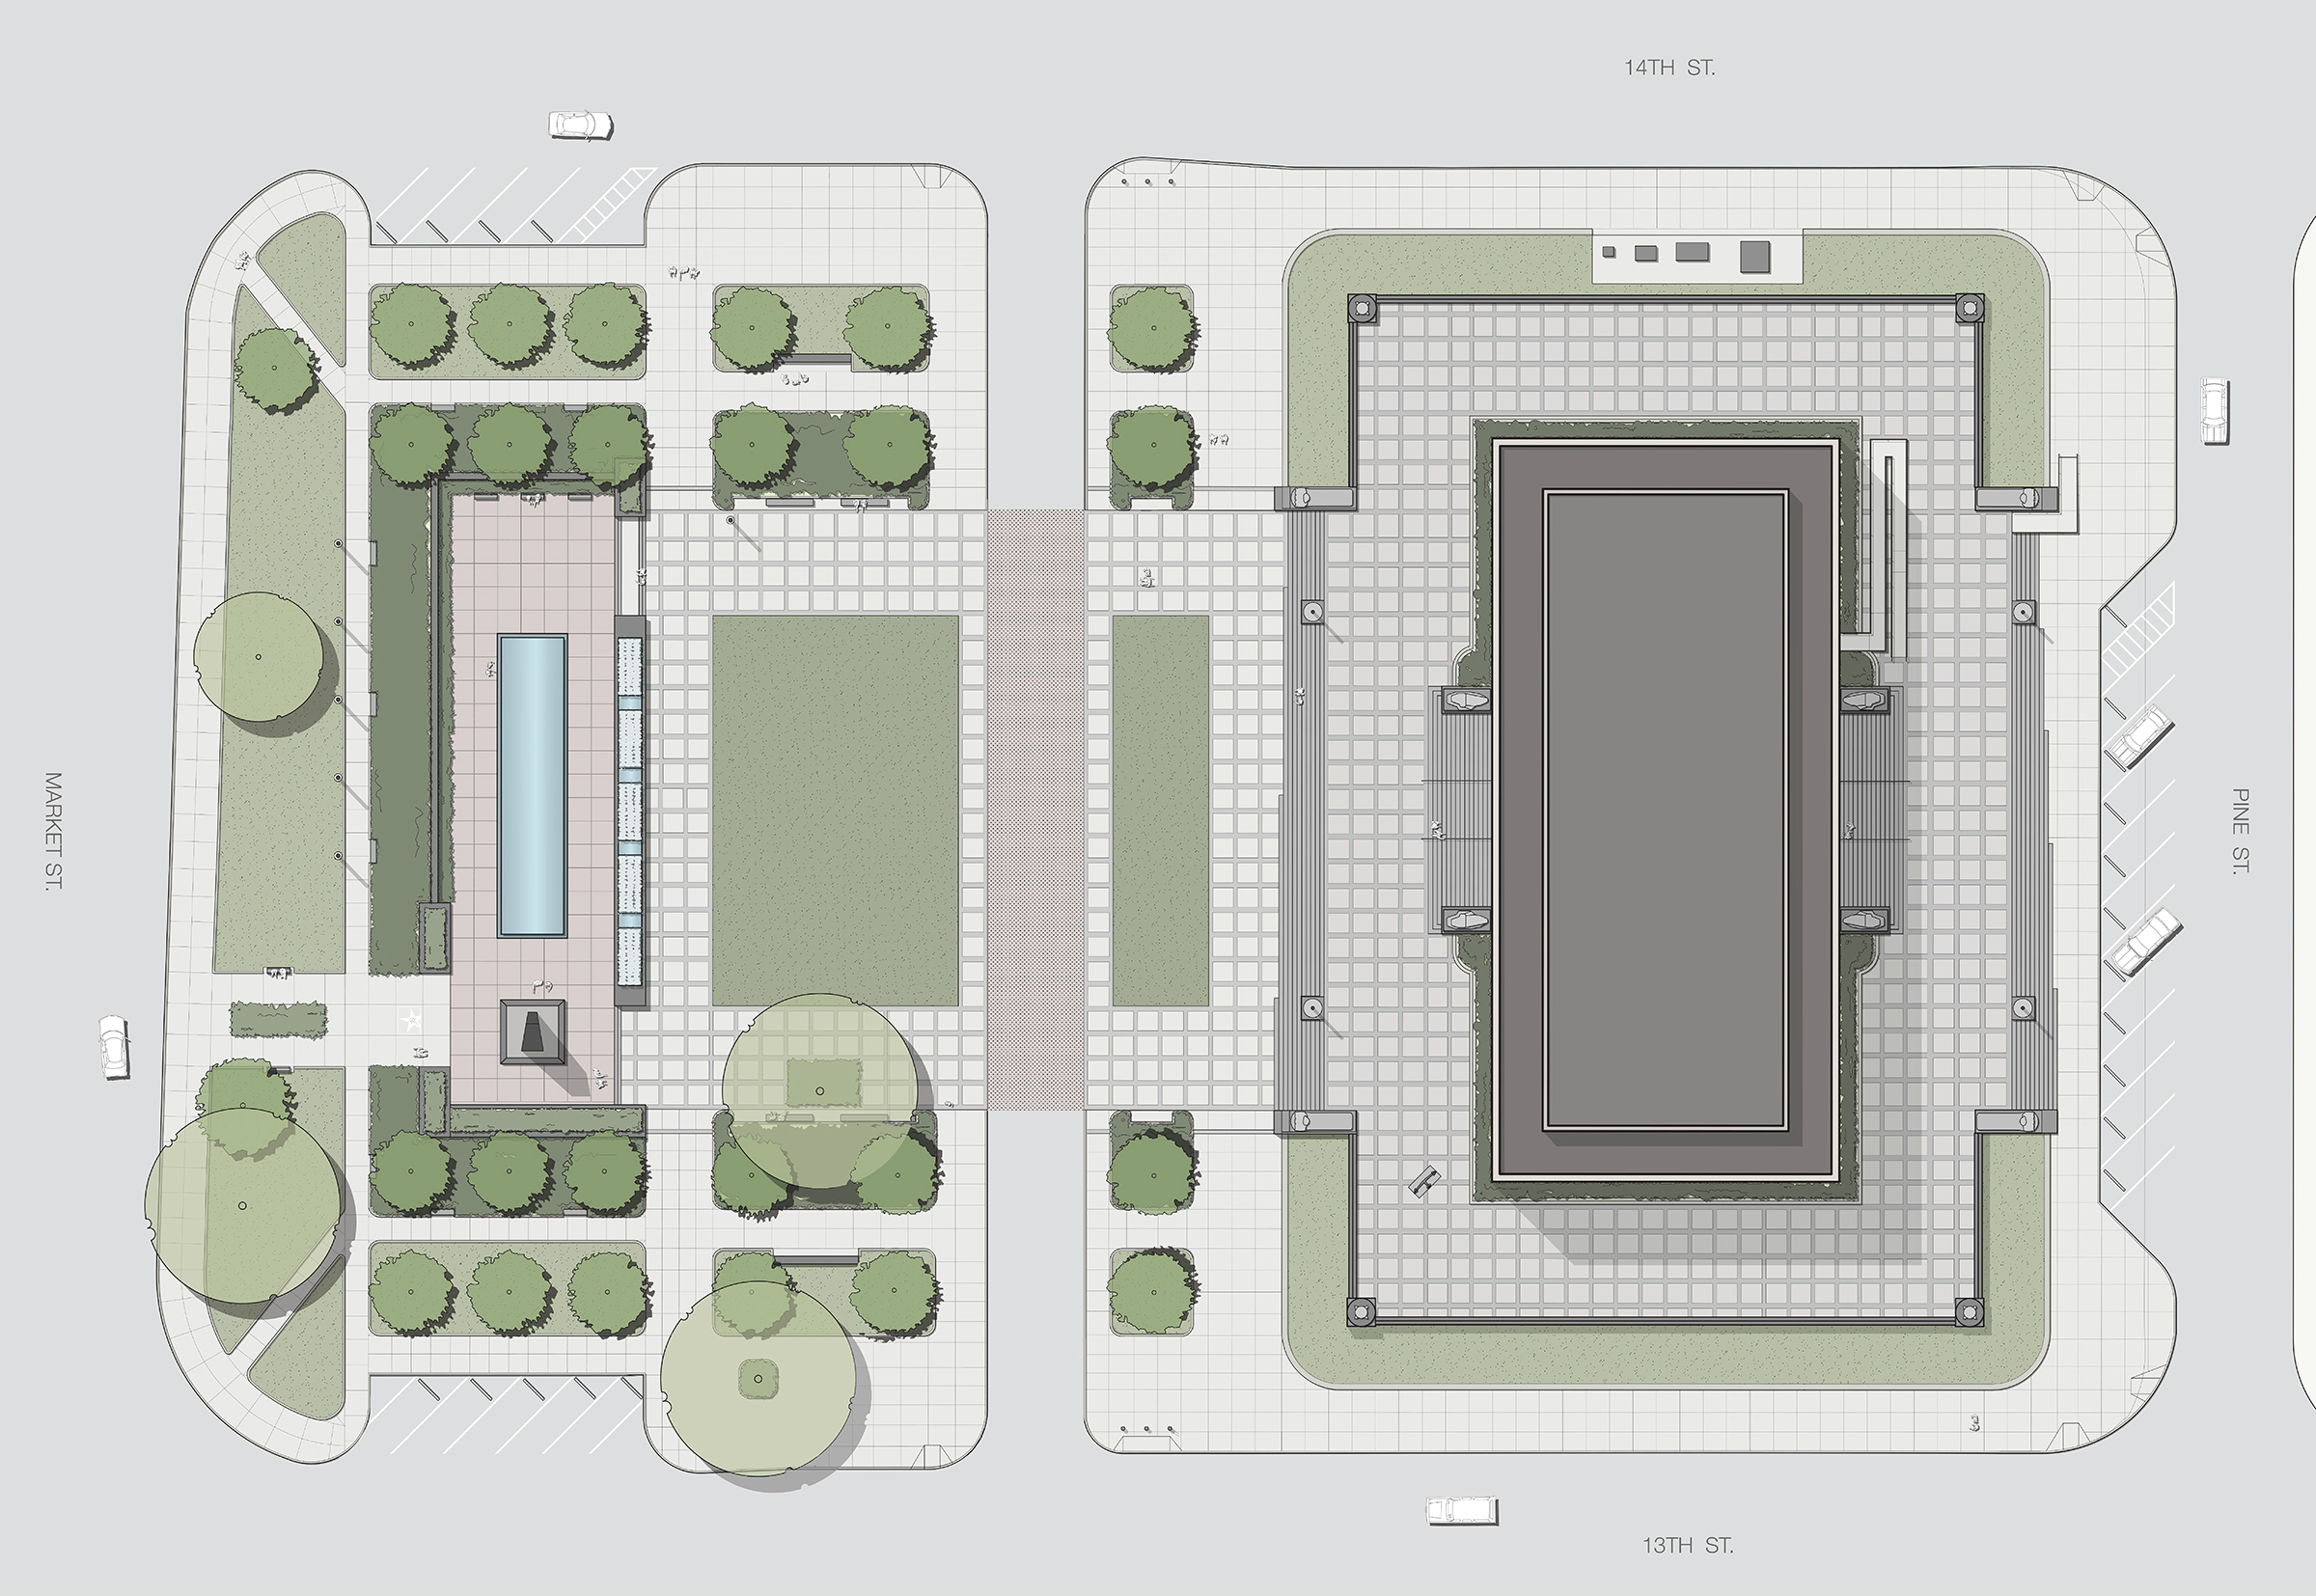 Soldiers Memorial Military Museum renovation plans - St. Louis, MO